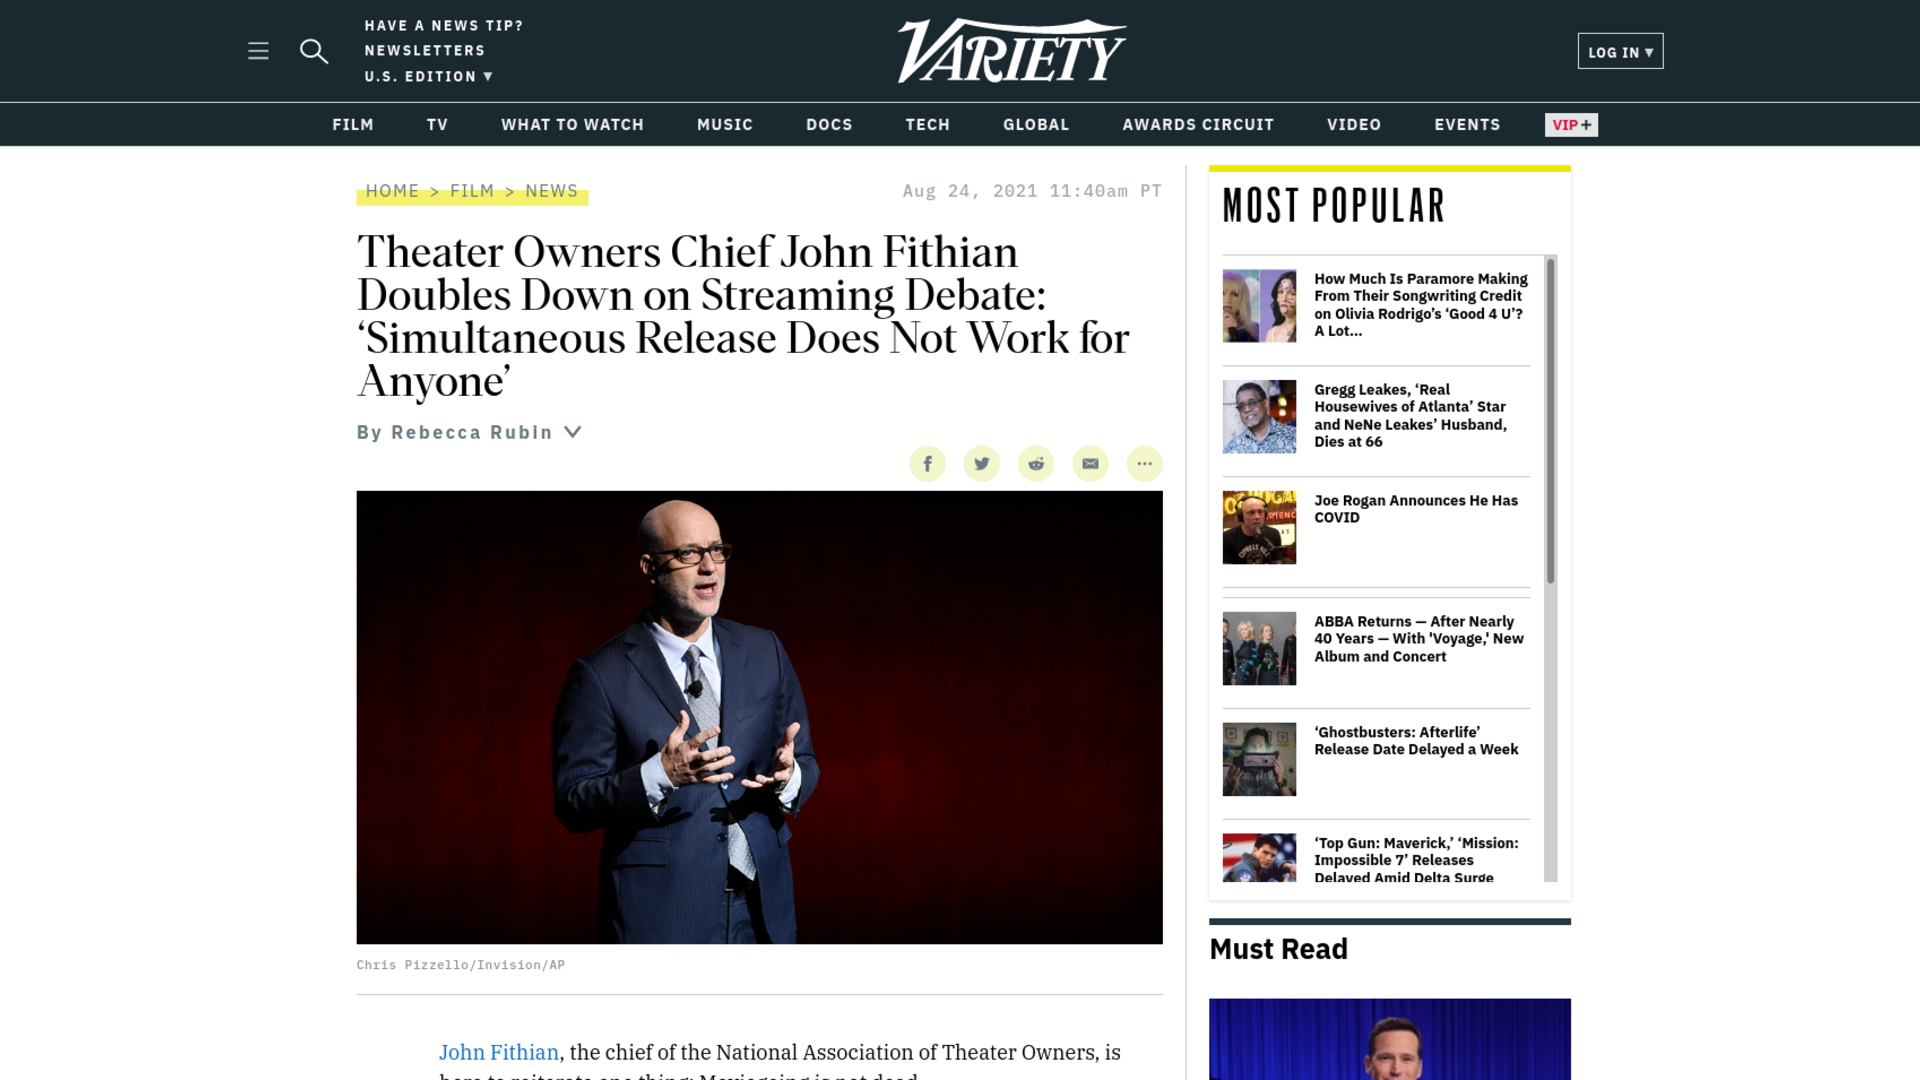 Fairness Rocks News Theater Owners Chief John Fithian Doubles Down on Streaming Debate: 'Simultaneous Release Does Not Work for Anyone'